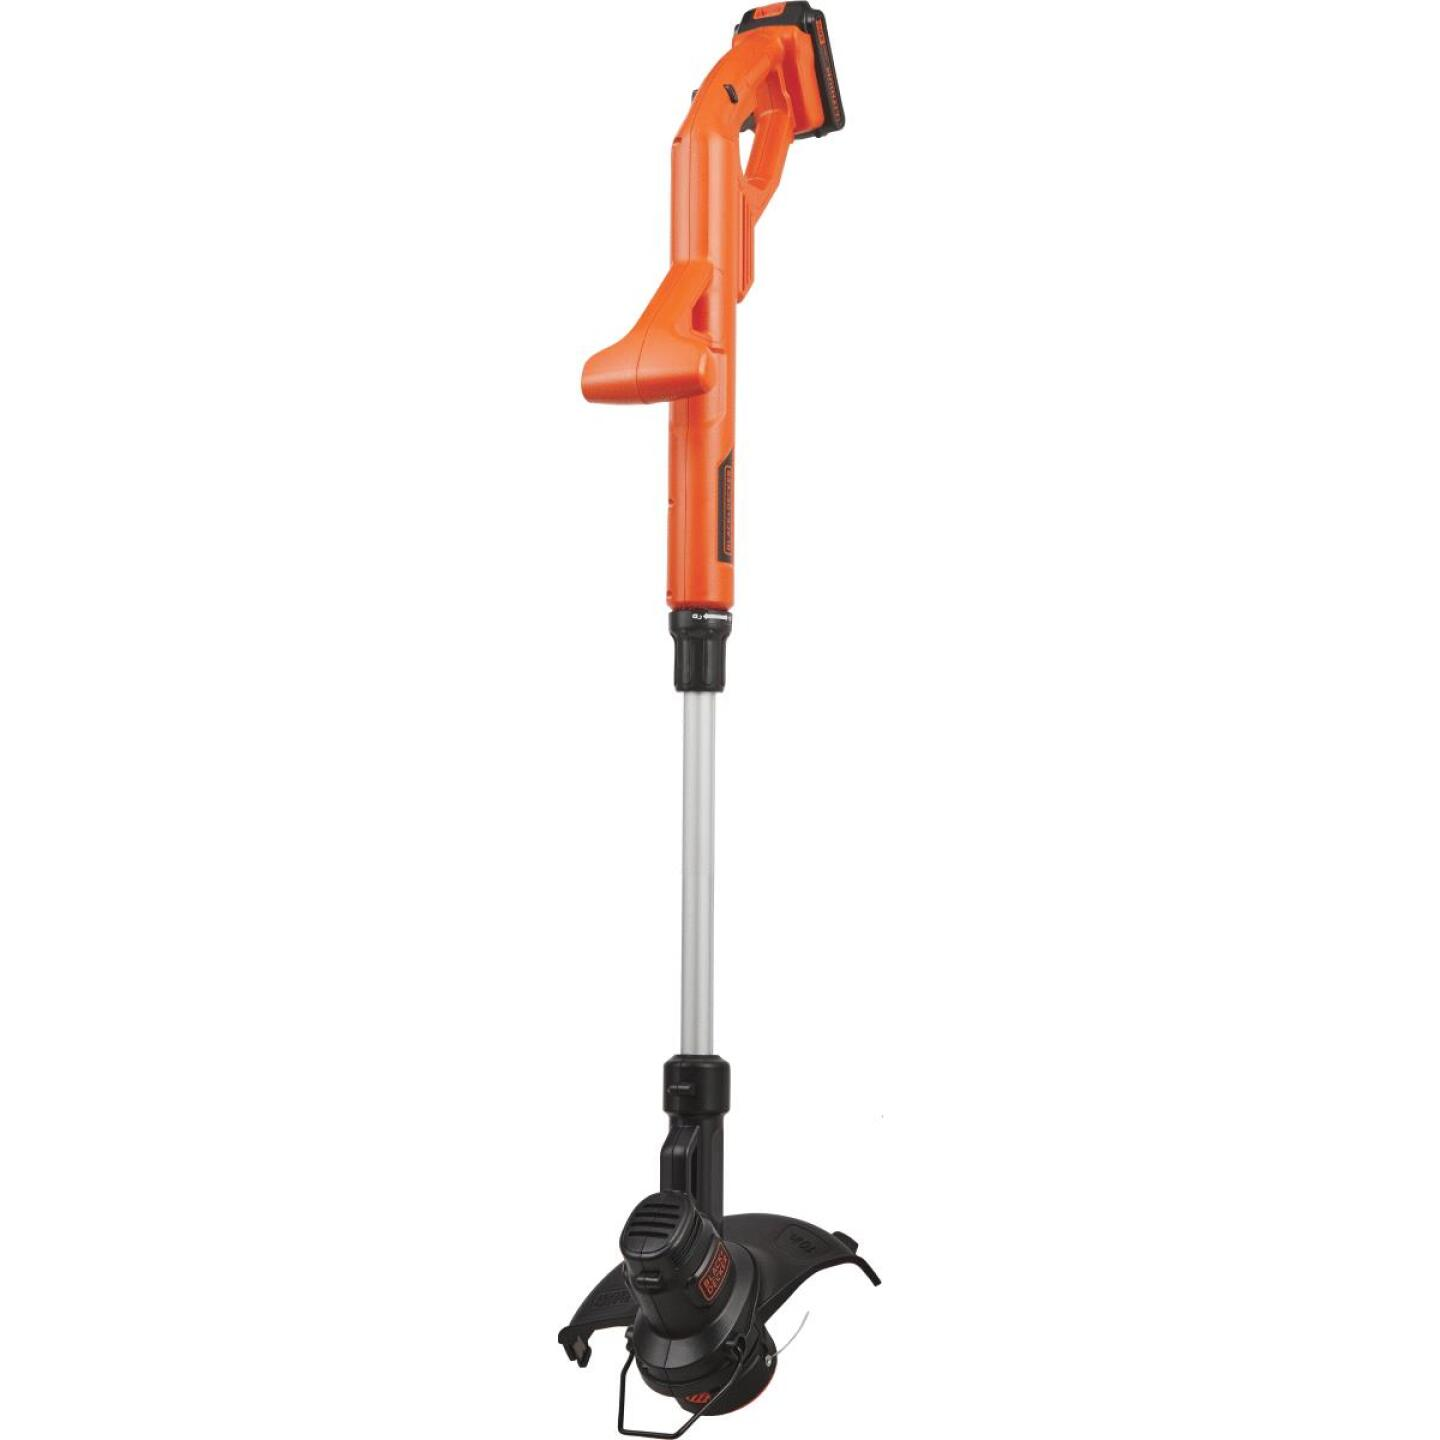 Black & Decker 20V MAX 10 In. Lithium Ion Straight Cordless String Trimmer/Edger Image 5